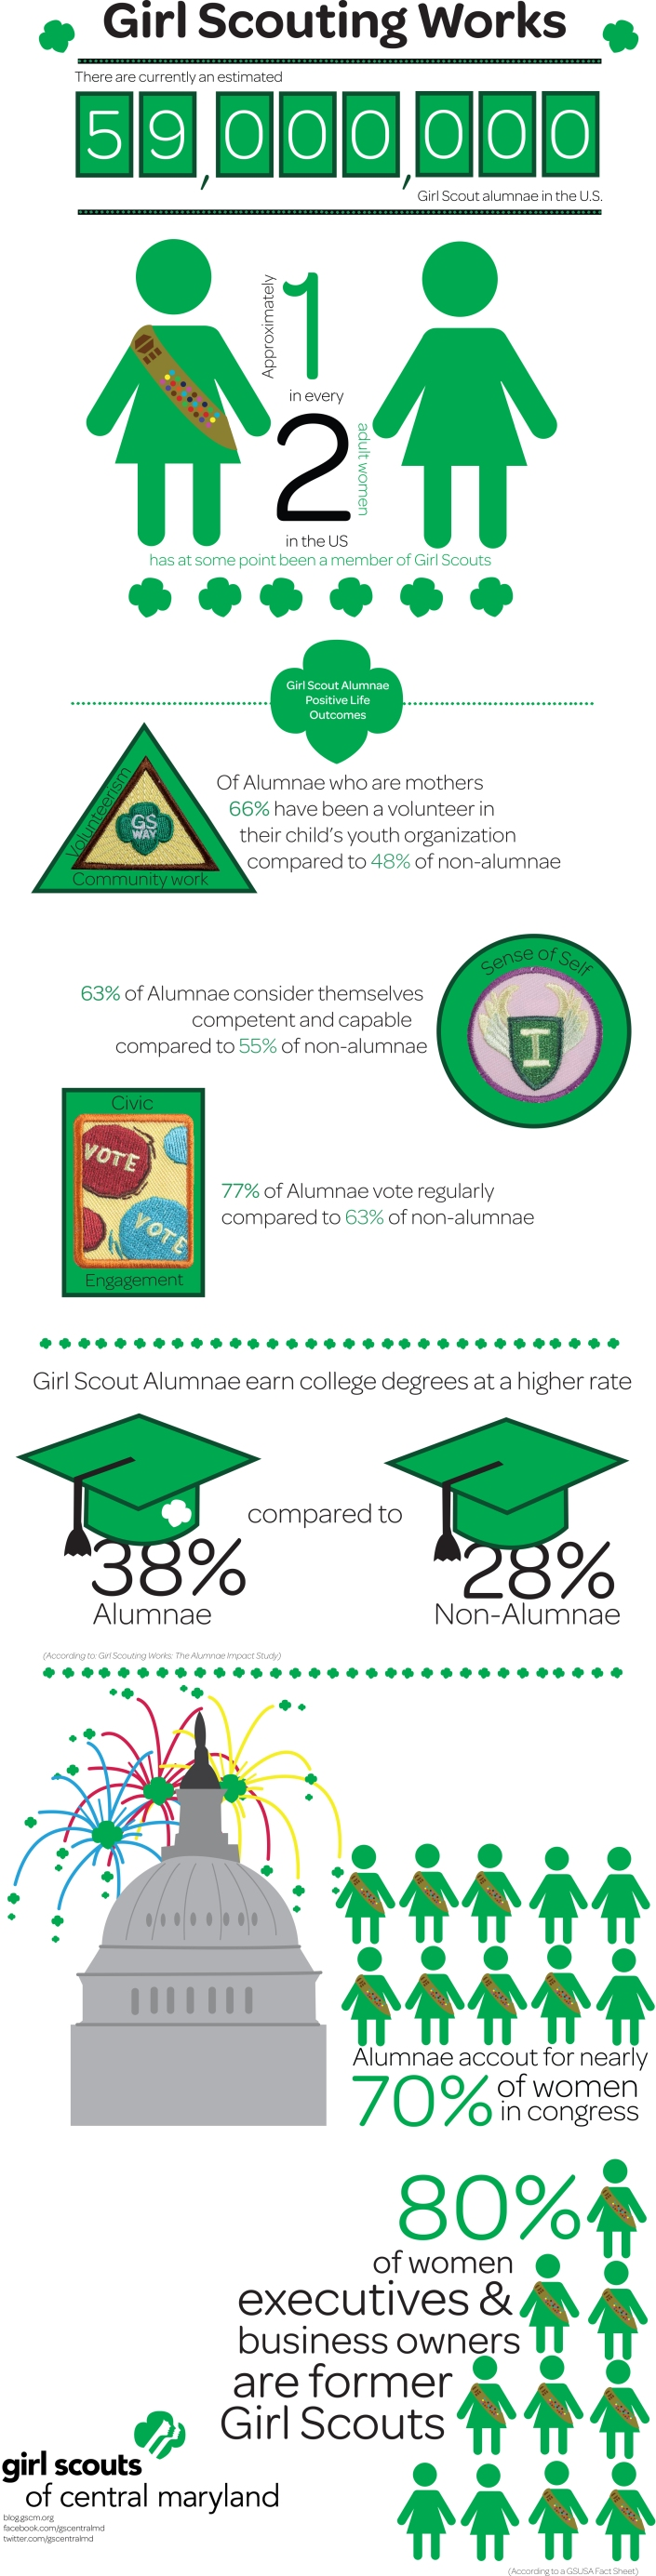 CompiledGirlScoutingWorksInfographic